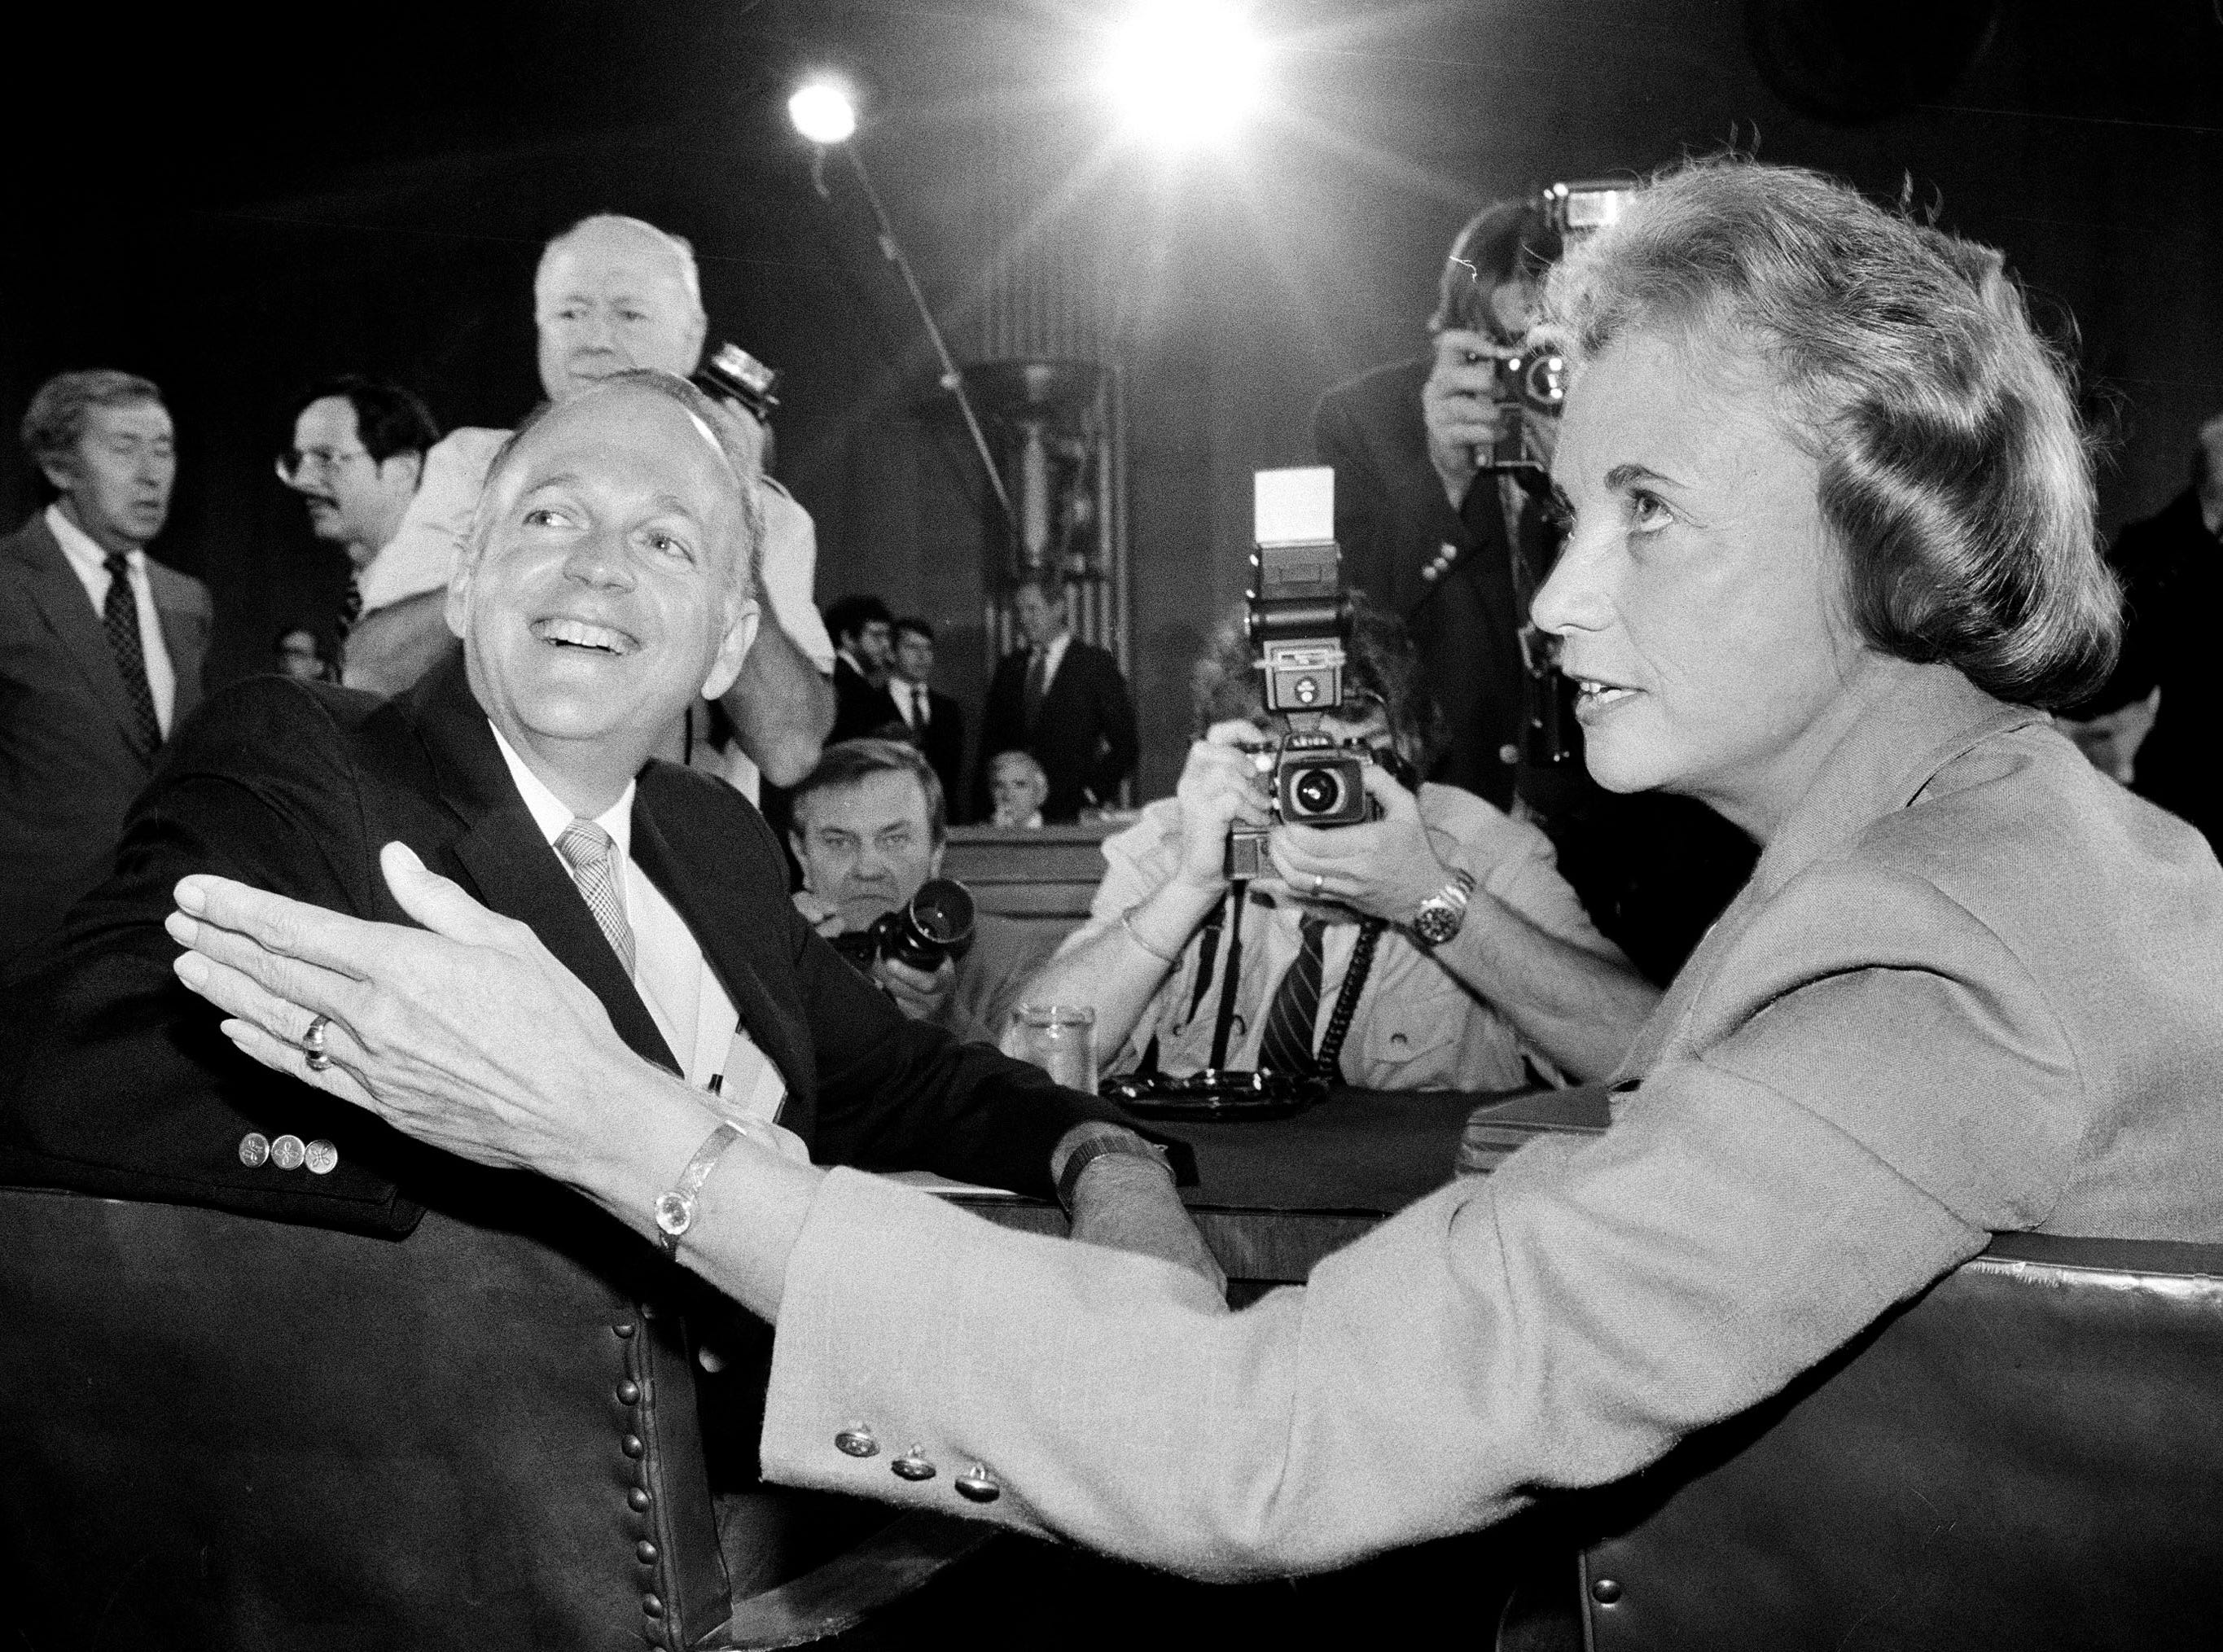 Supreme Court nominee Sandra Day O'Connor is pictured alongside Sen. Dennis DeConcini, D-Ariz., prior to the opening of her confirmation hearings, Sept. 9, 1981, on Capitol Hill before the Senate Judiciary Committee.